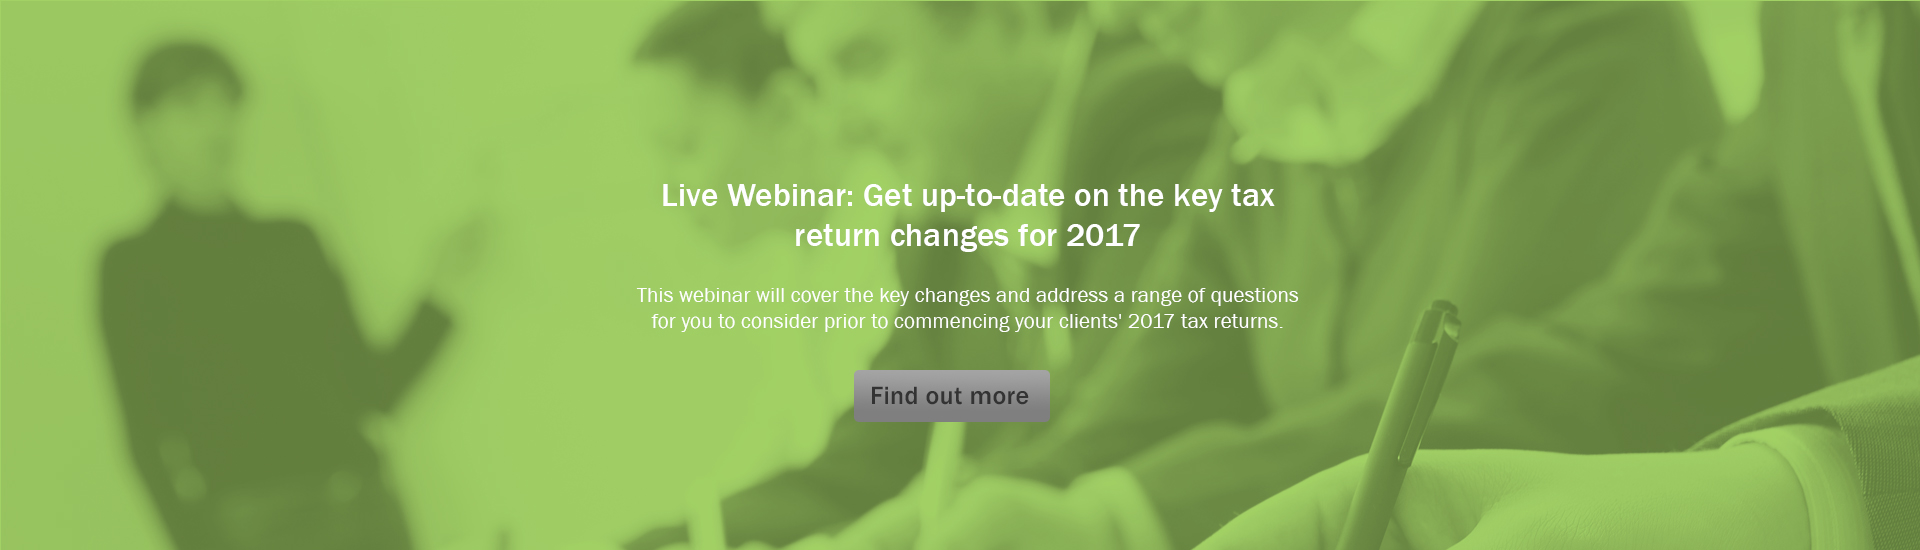 Tax Return Changes for 2017 - Main Banner Image